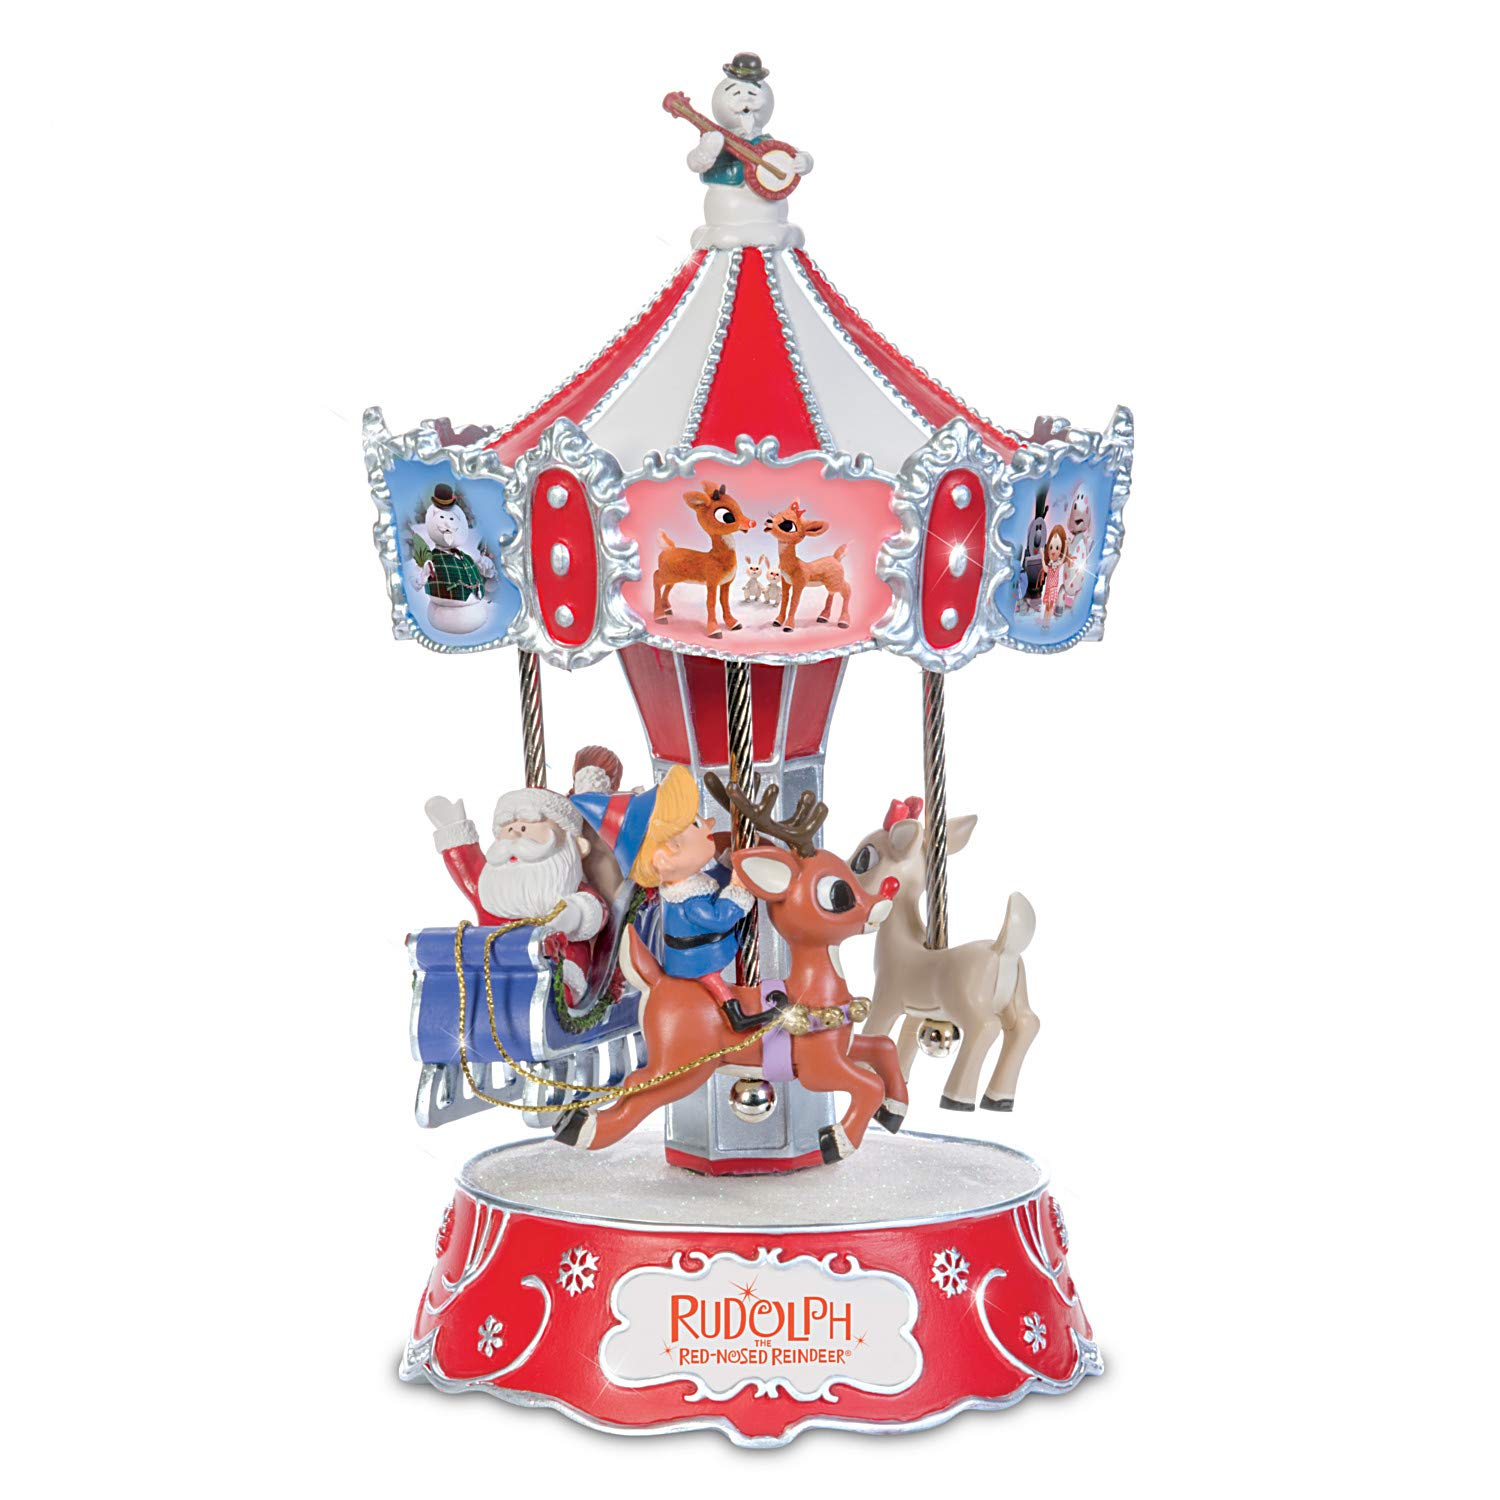 Image of Colorful Rudolph The Red Nosed Reindeer Musical Carousel Figurine